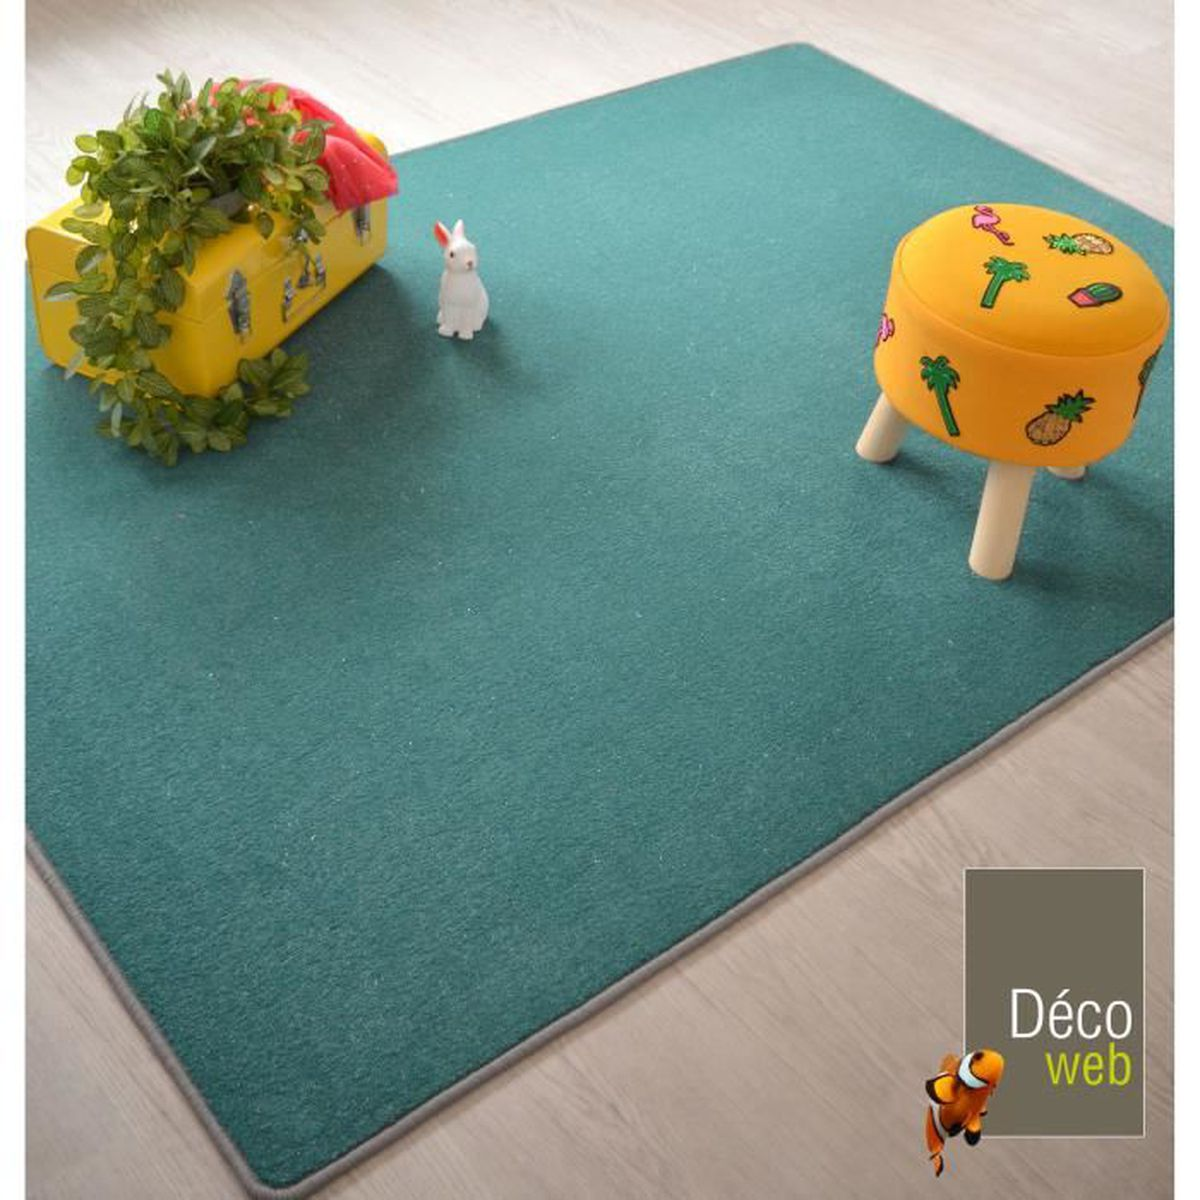 Tapis chambre turquoise - Achat / Vente pas cher